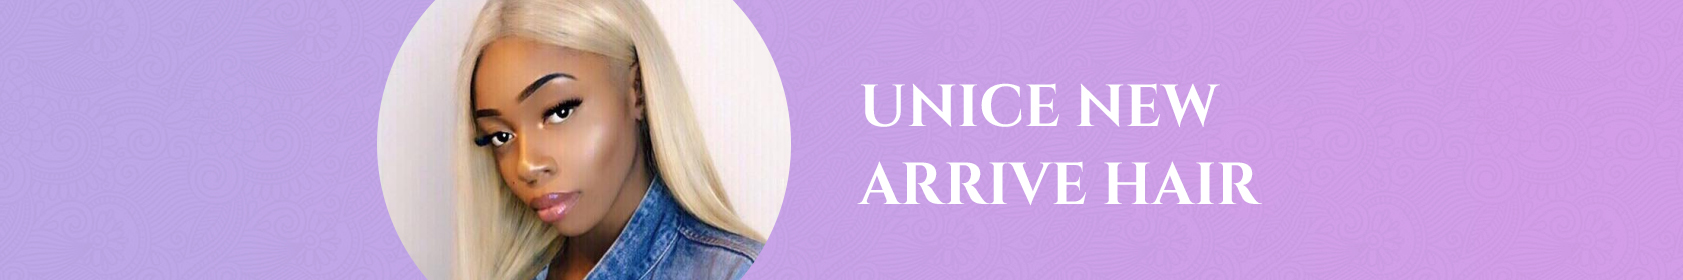 UNice Fashion Hair Style: Get your Favorite Hairstyle